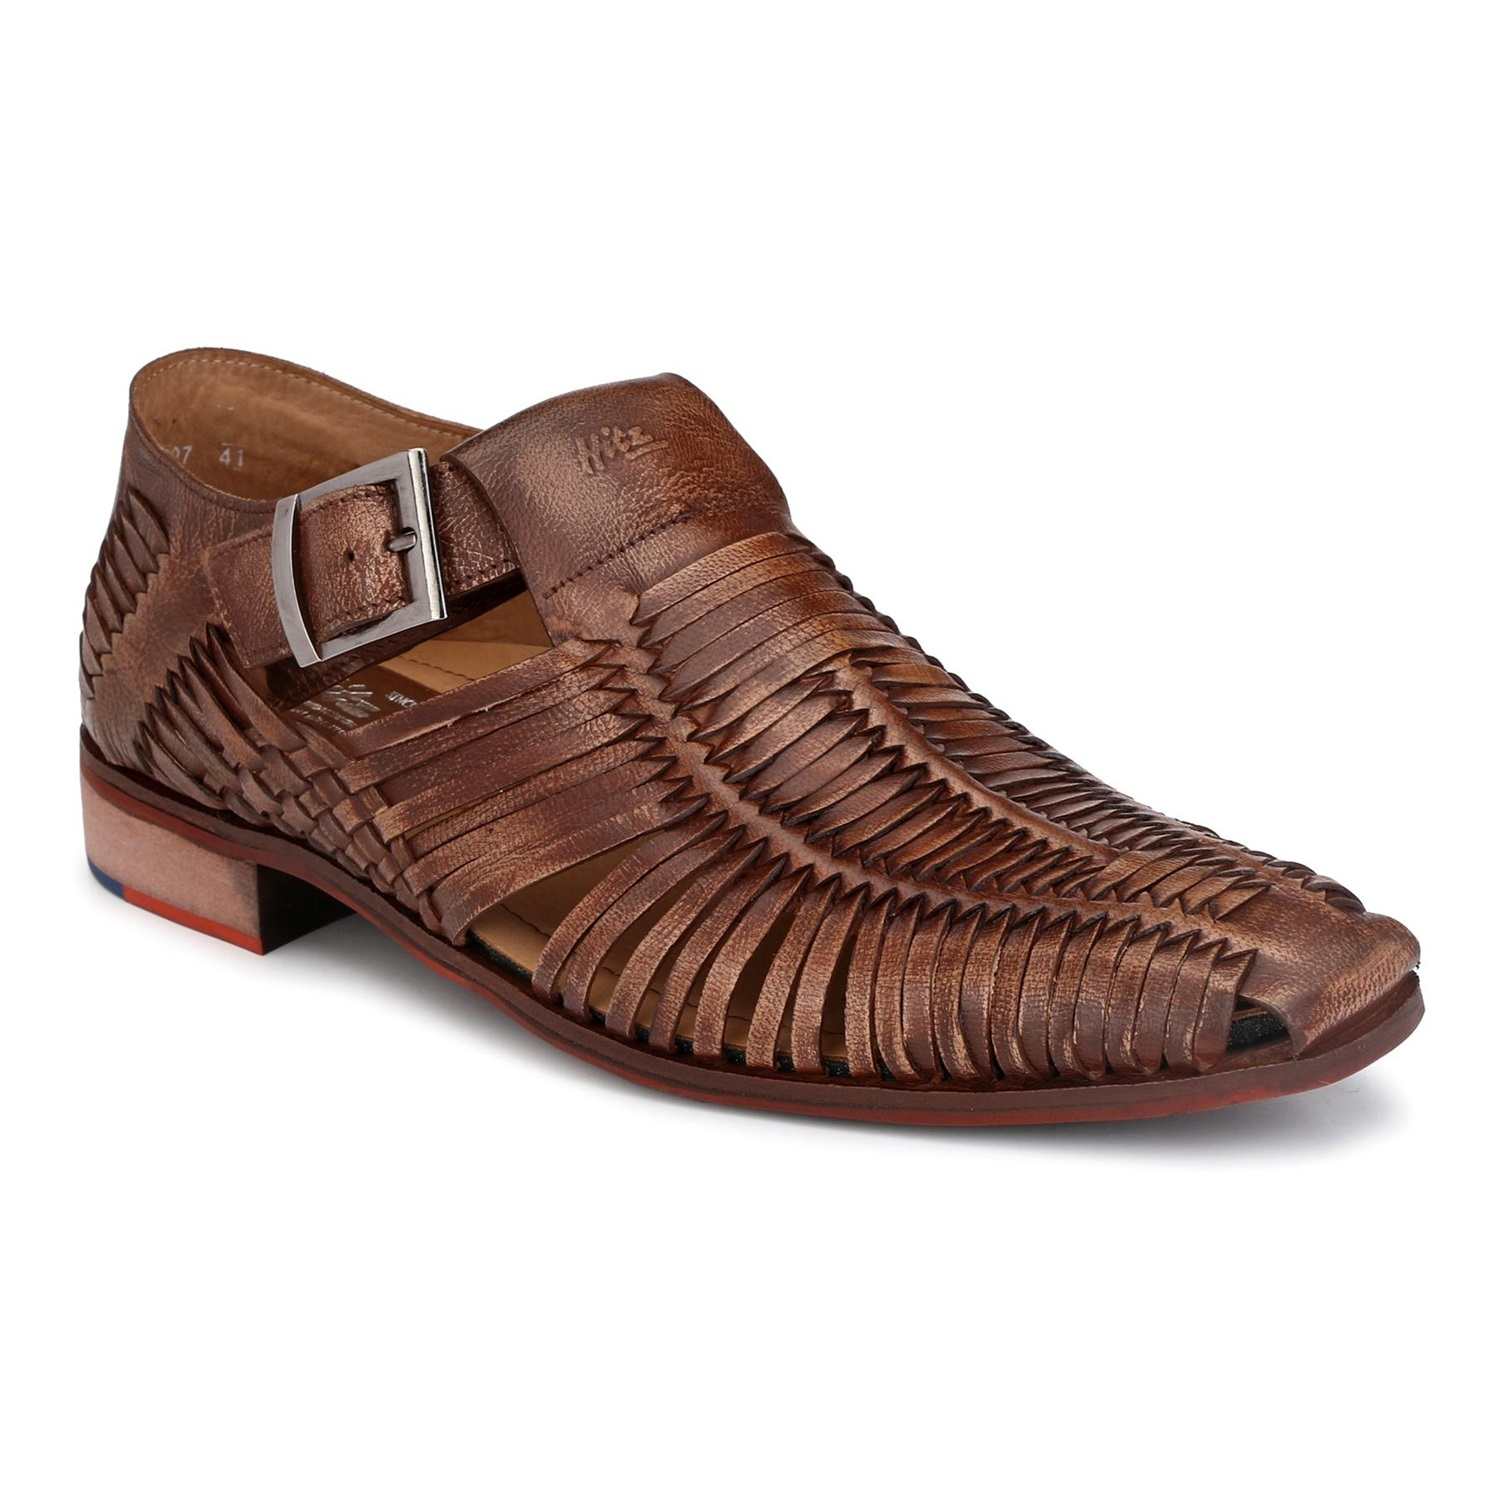 Hitz   Hitz Brown_Genuine Leather Party Wear Shoes For Men With Buckle